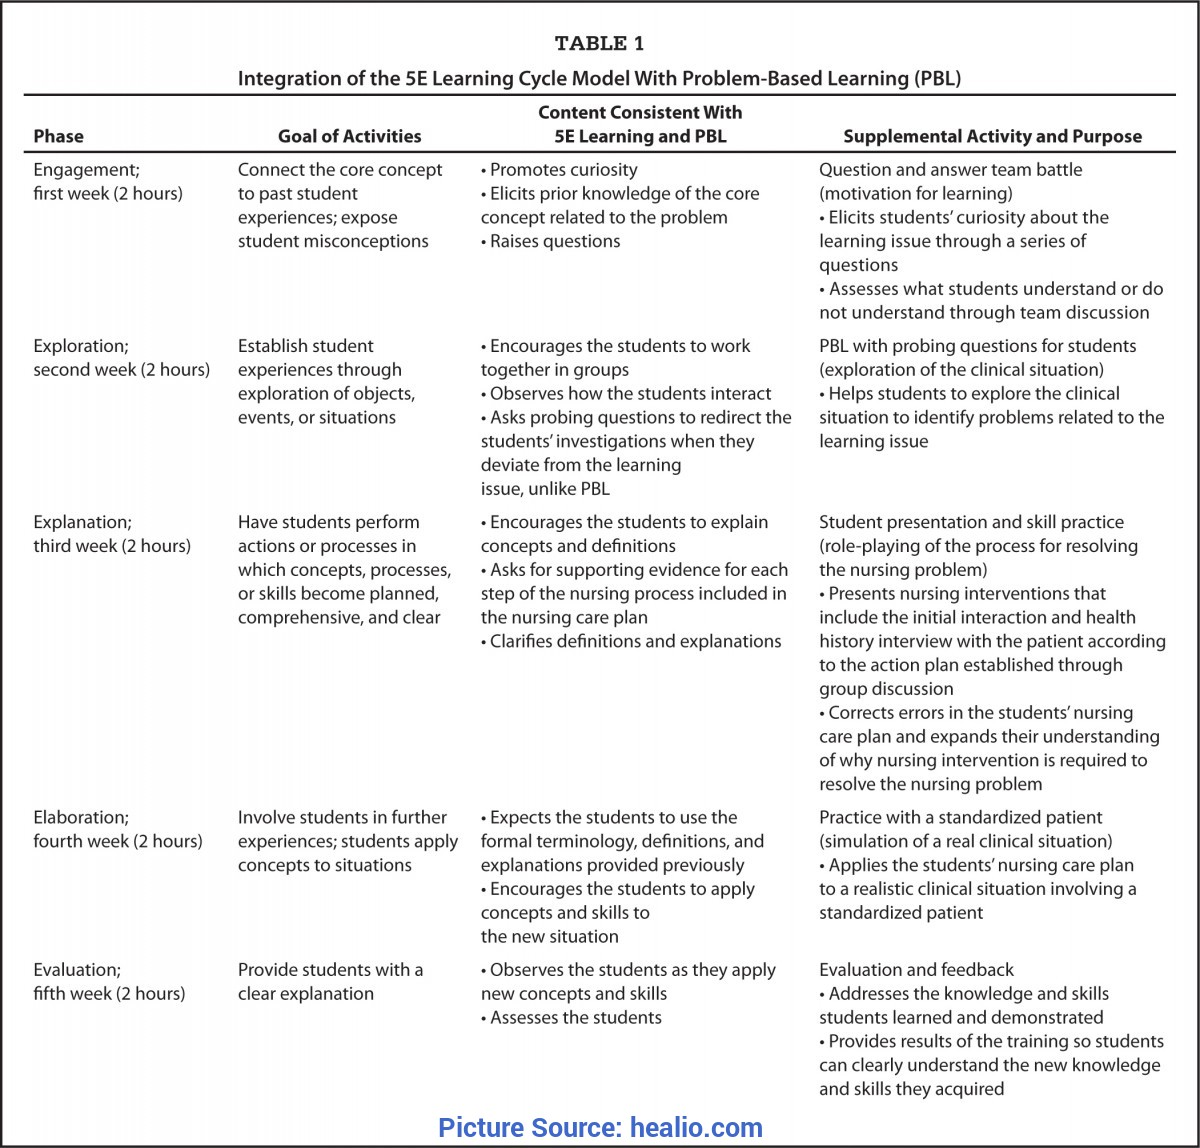 Good The 5E Learning Cycle Use Of The 5E Learning Cycle Model Combined With Problem-Base